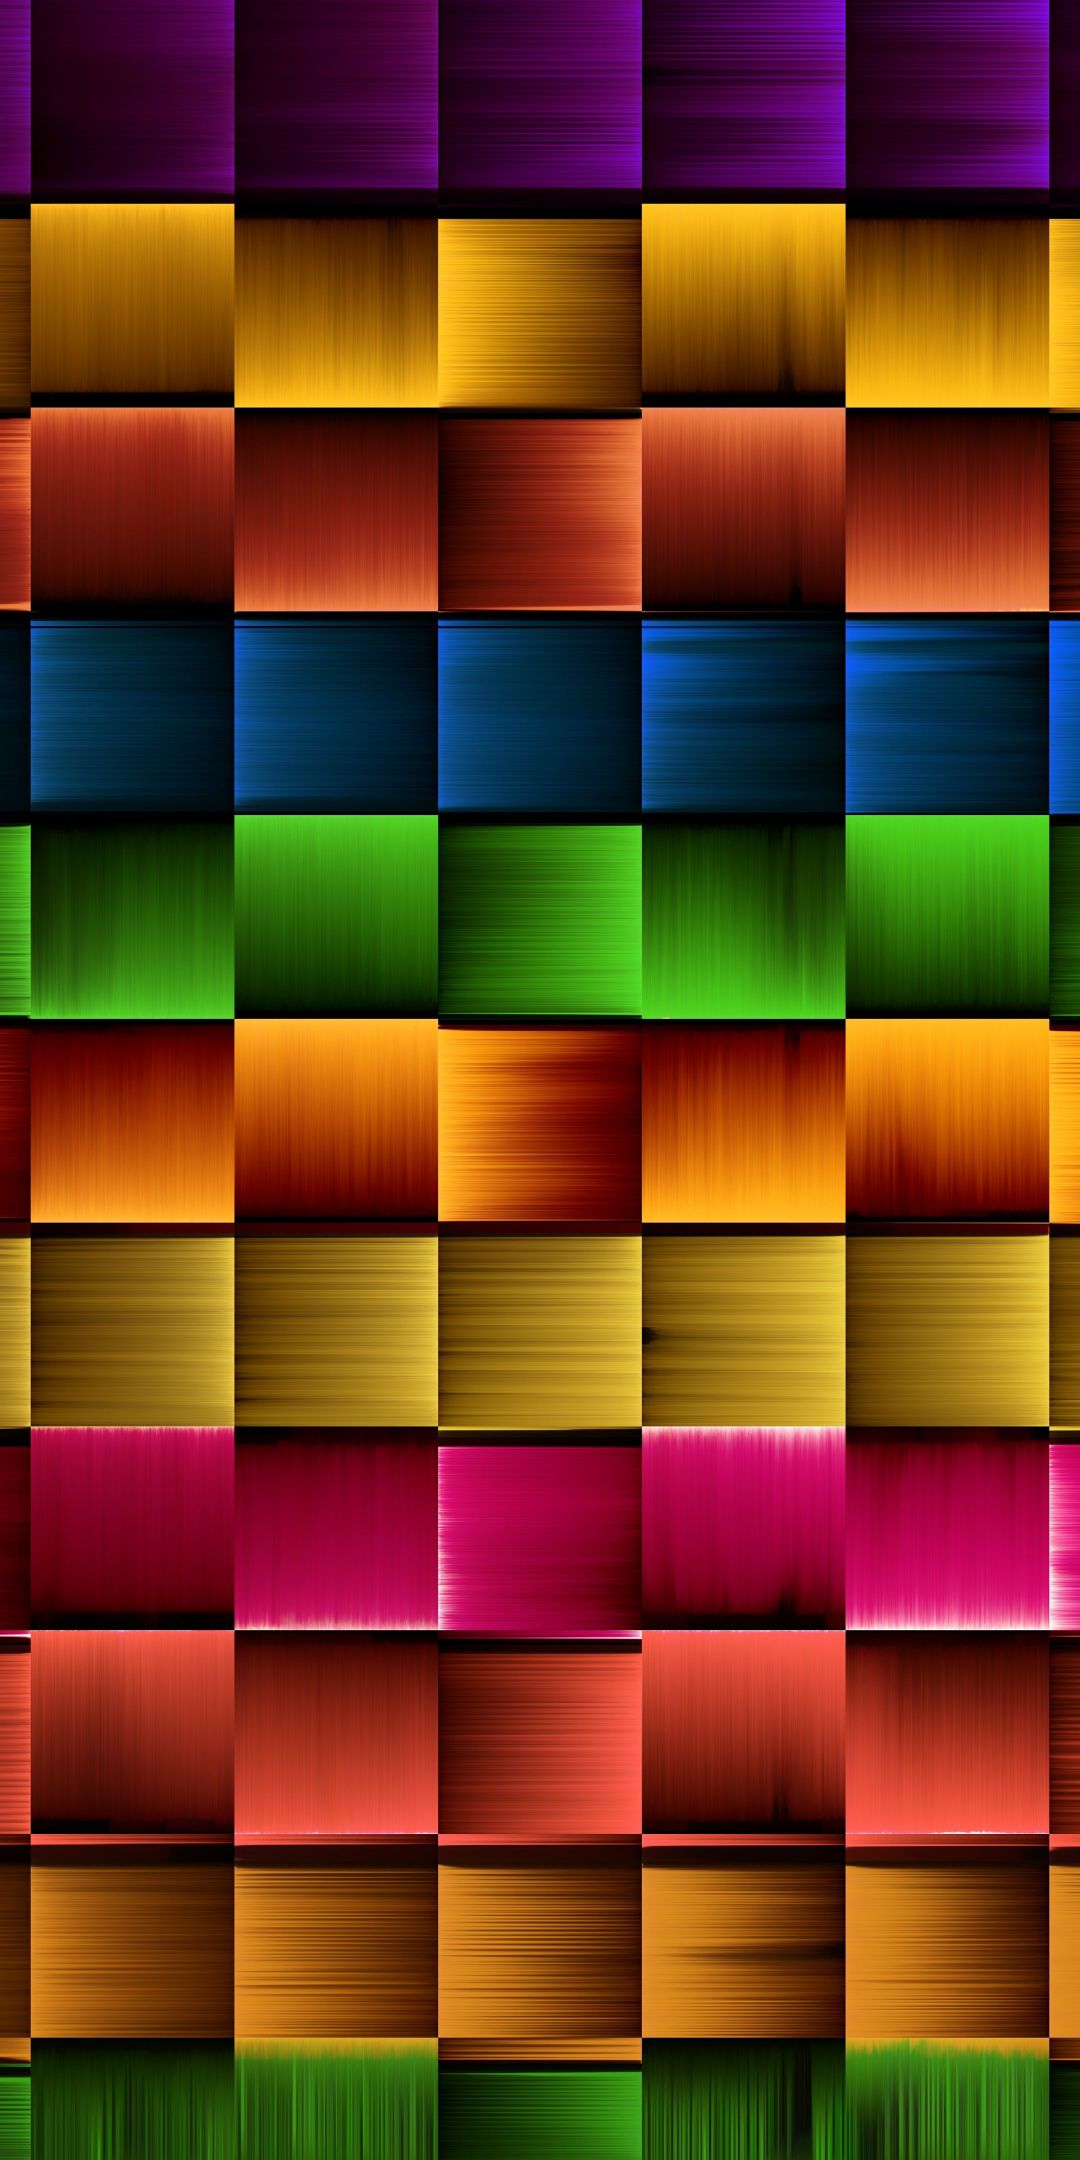 Colorful Squares Abstract 2019 1080x2160 Wallpaper Phone Wallpaper Design Qhd Wallpaper Flower Phone Wallpaper